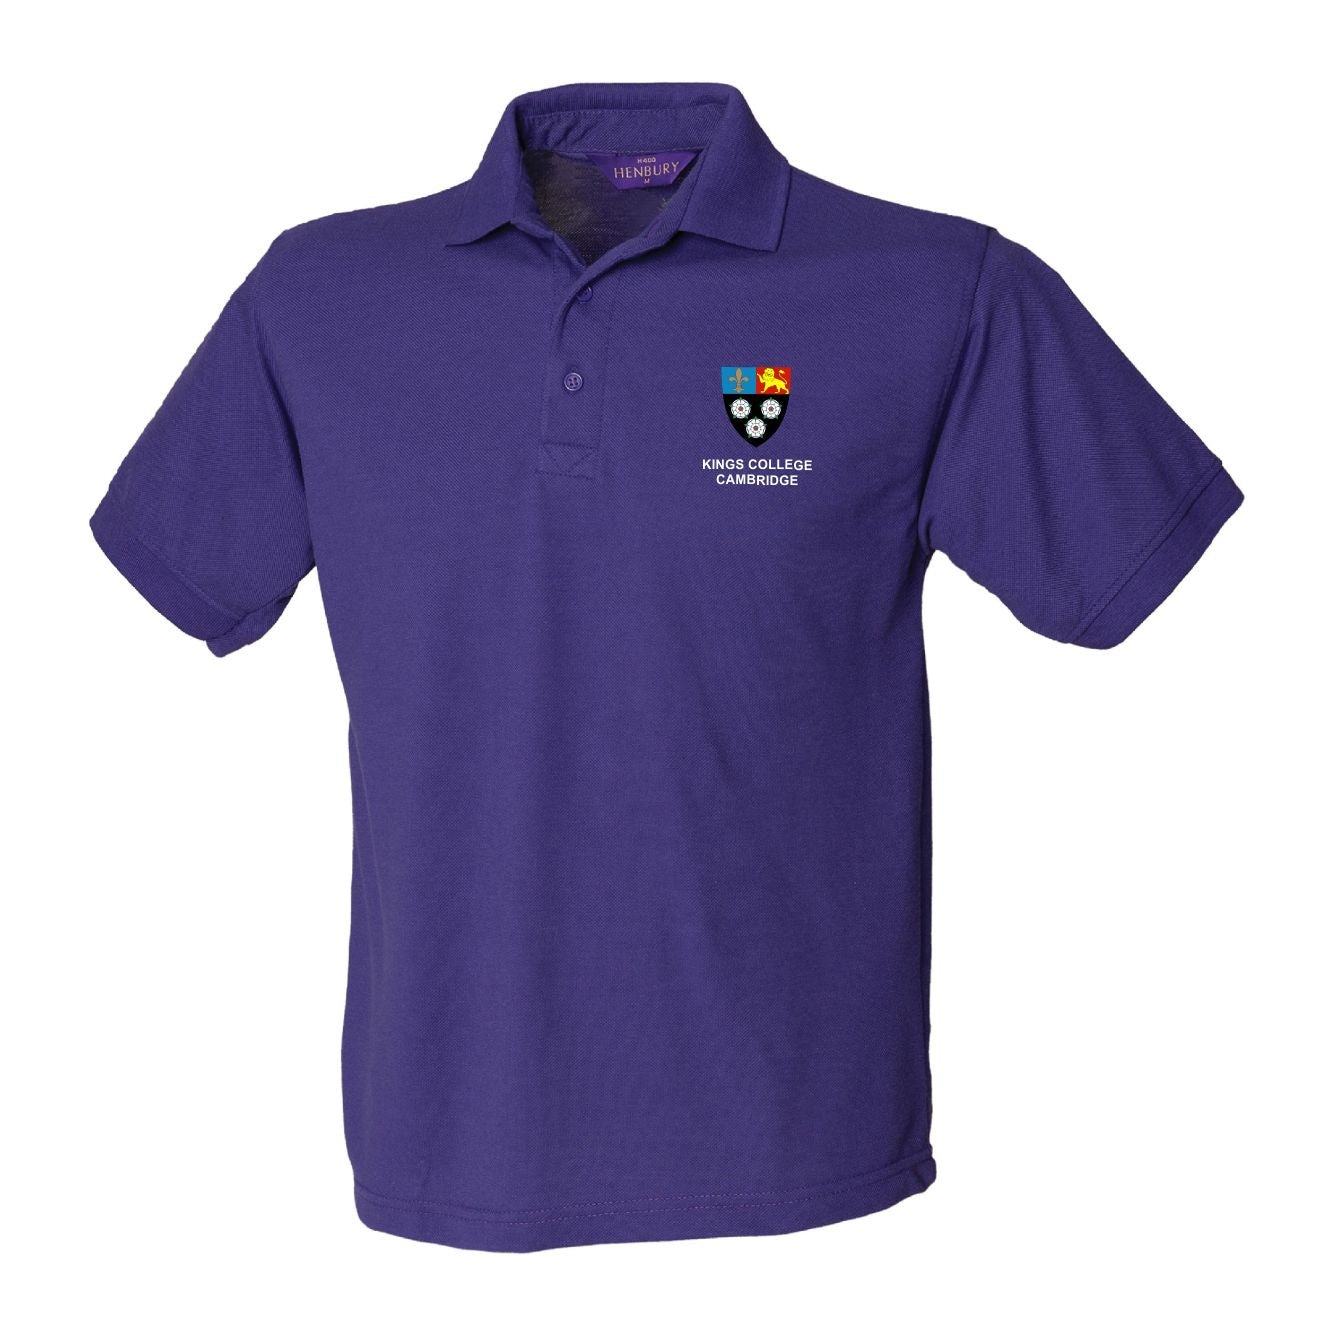 Kings College Cambridge Poloshirt Ladies